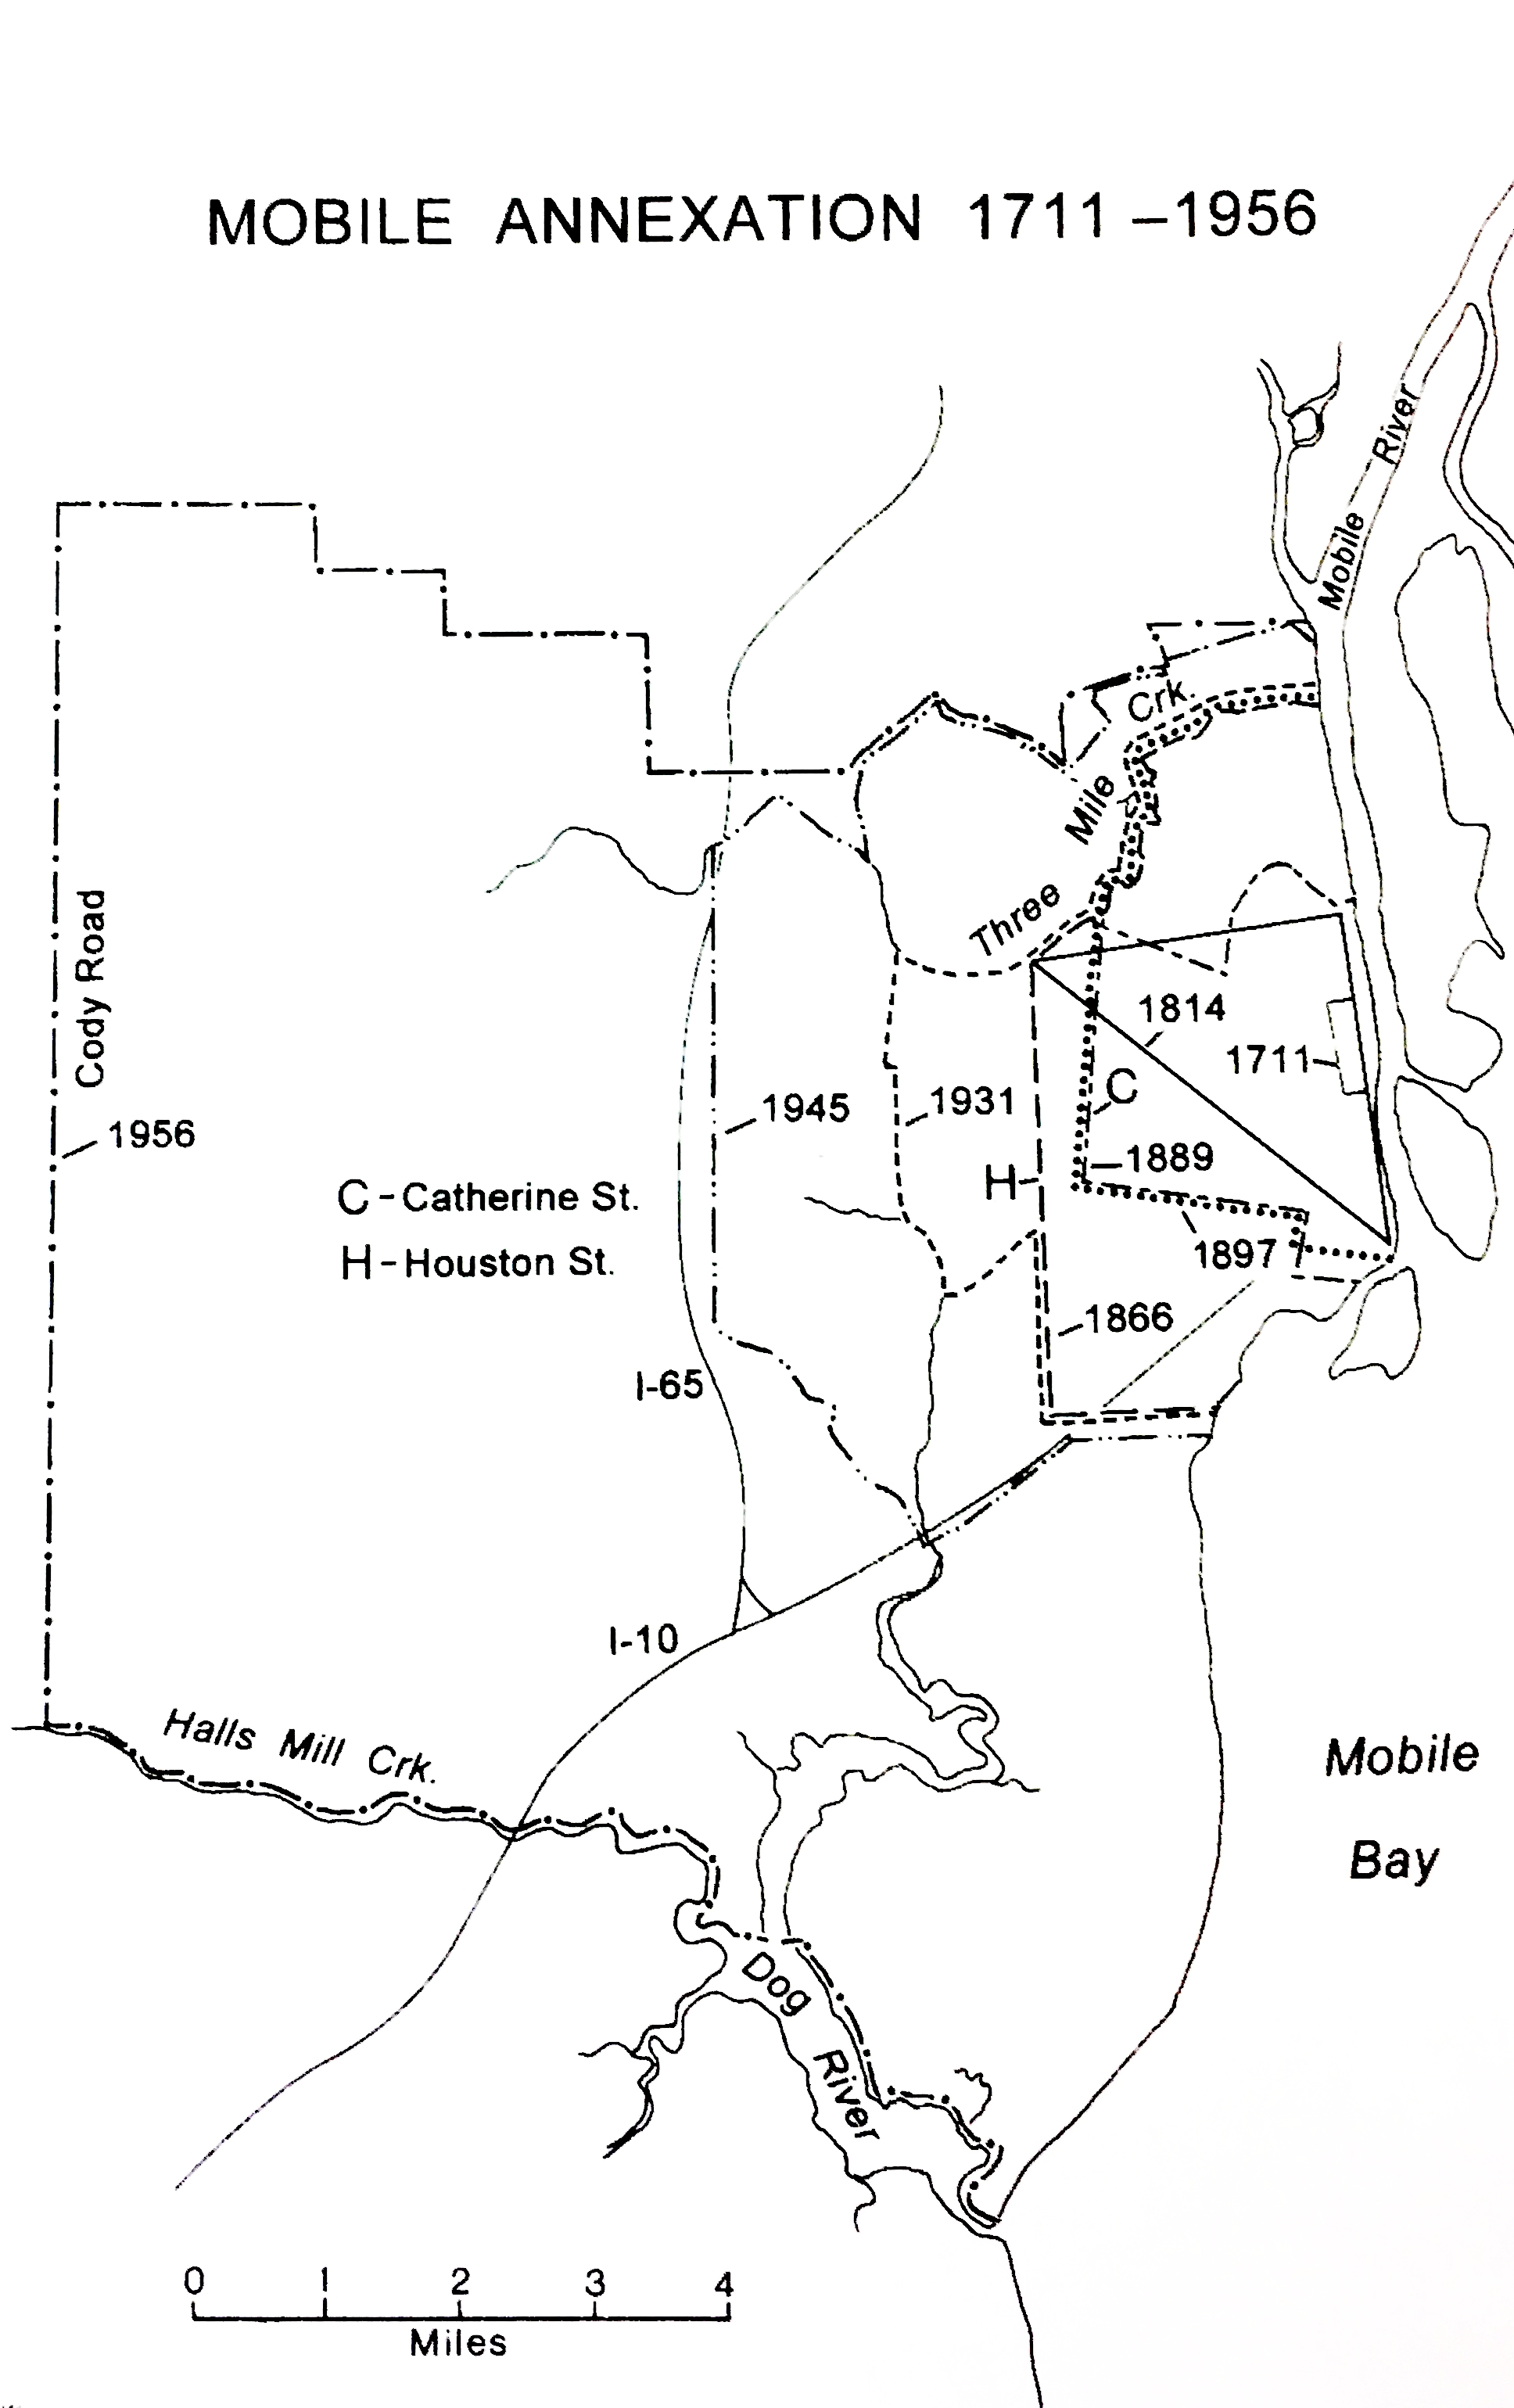 Mobile's annexations 1711-1956